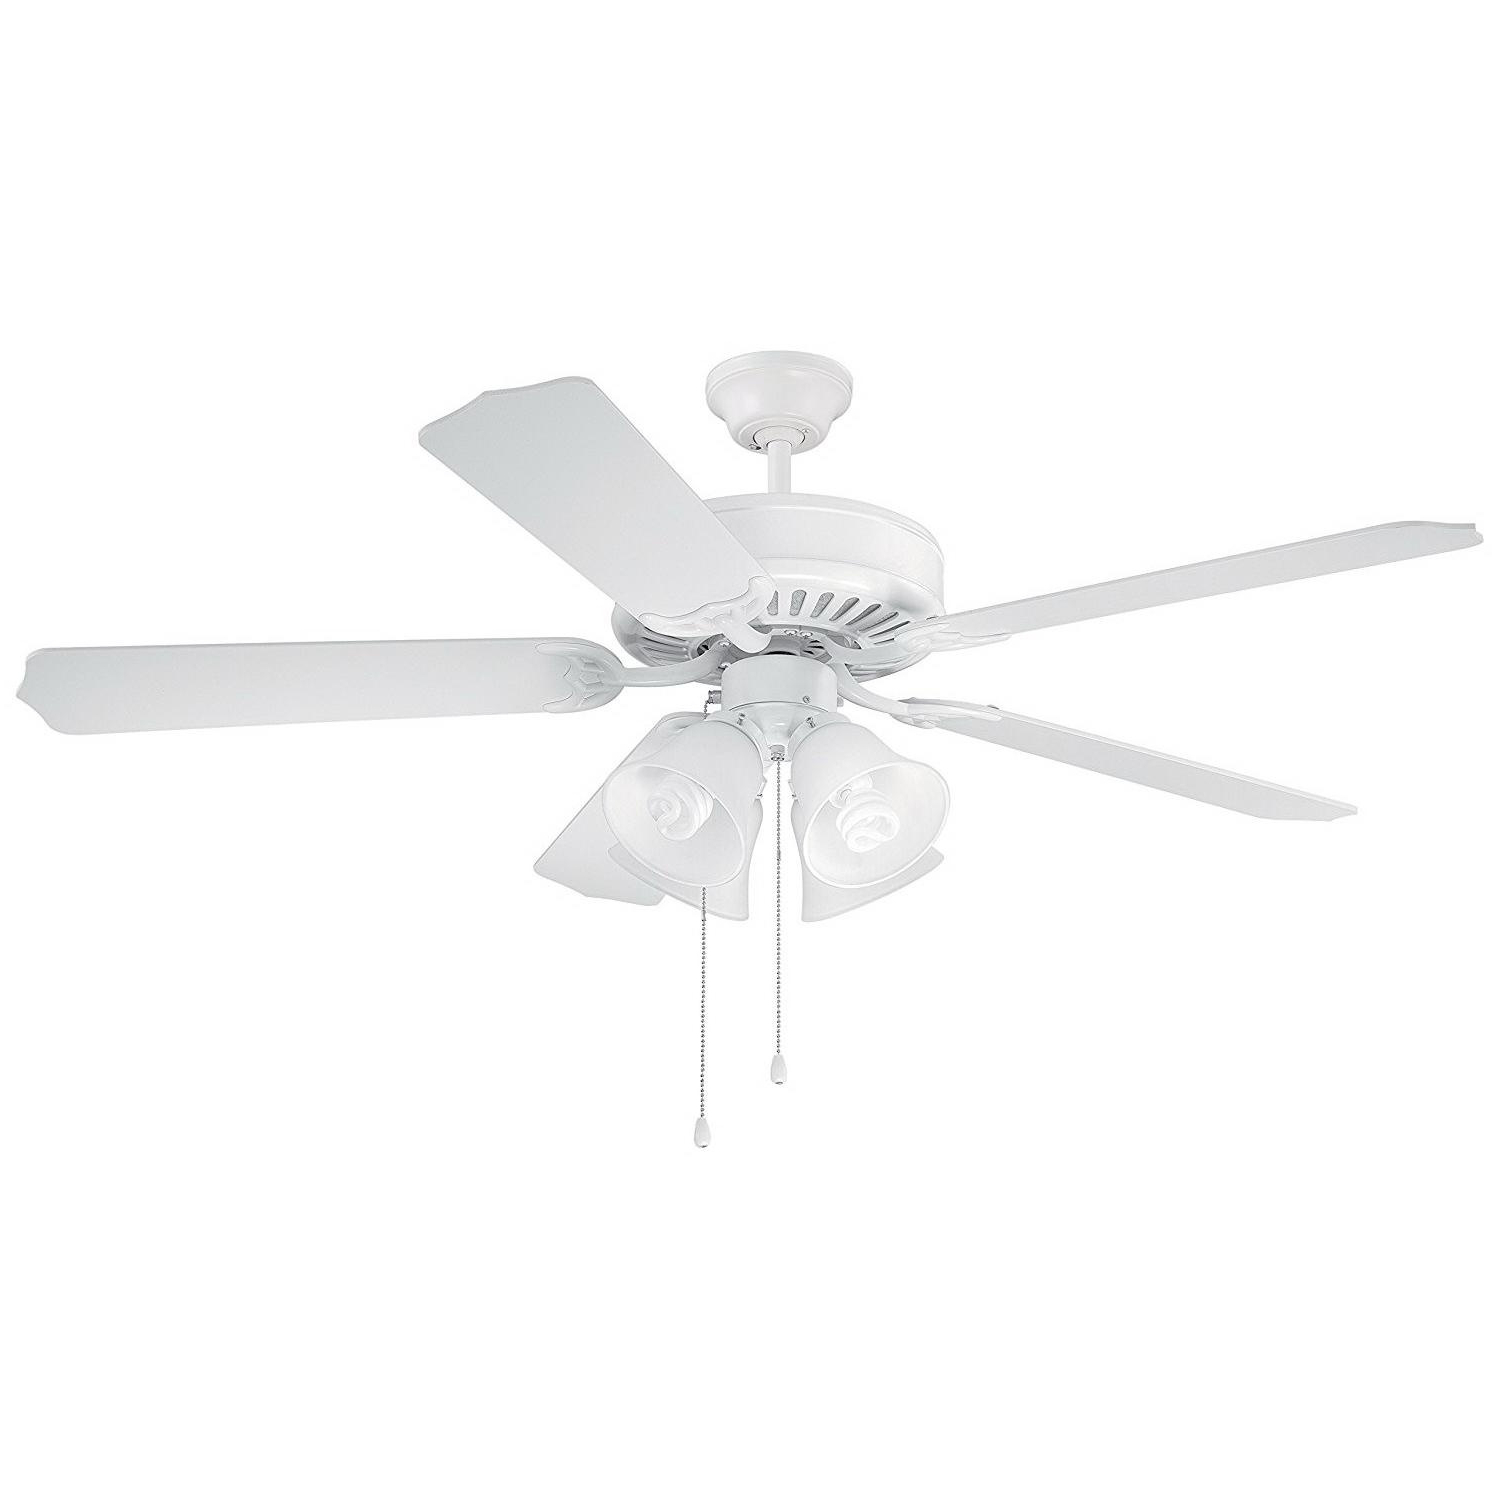 Builder 5 Blade Ceiling Fans Throughout Famous Craftmade C203W Pro Builder 203 Ceiling Fan With Light 52 Inch 5 Blade  3 Speed White (View 5 of 20)